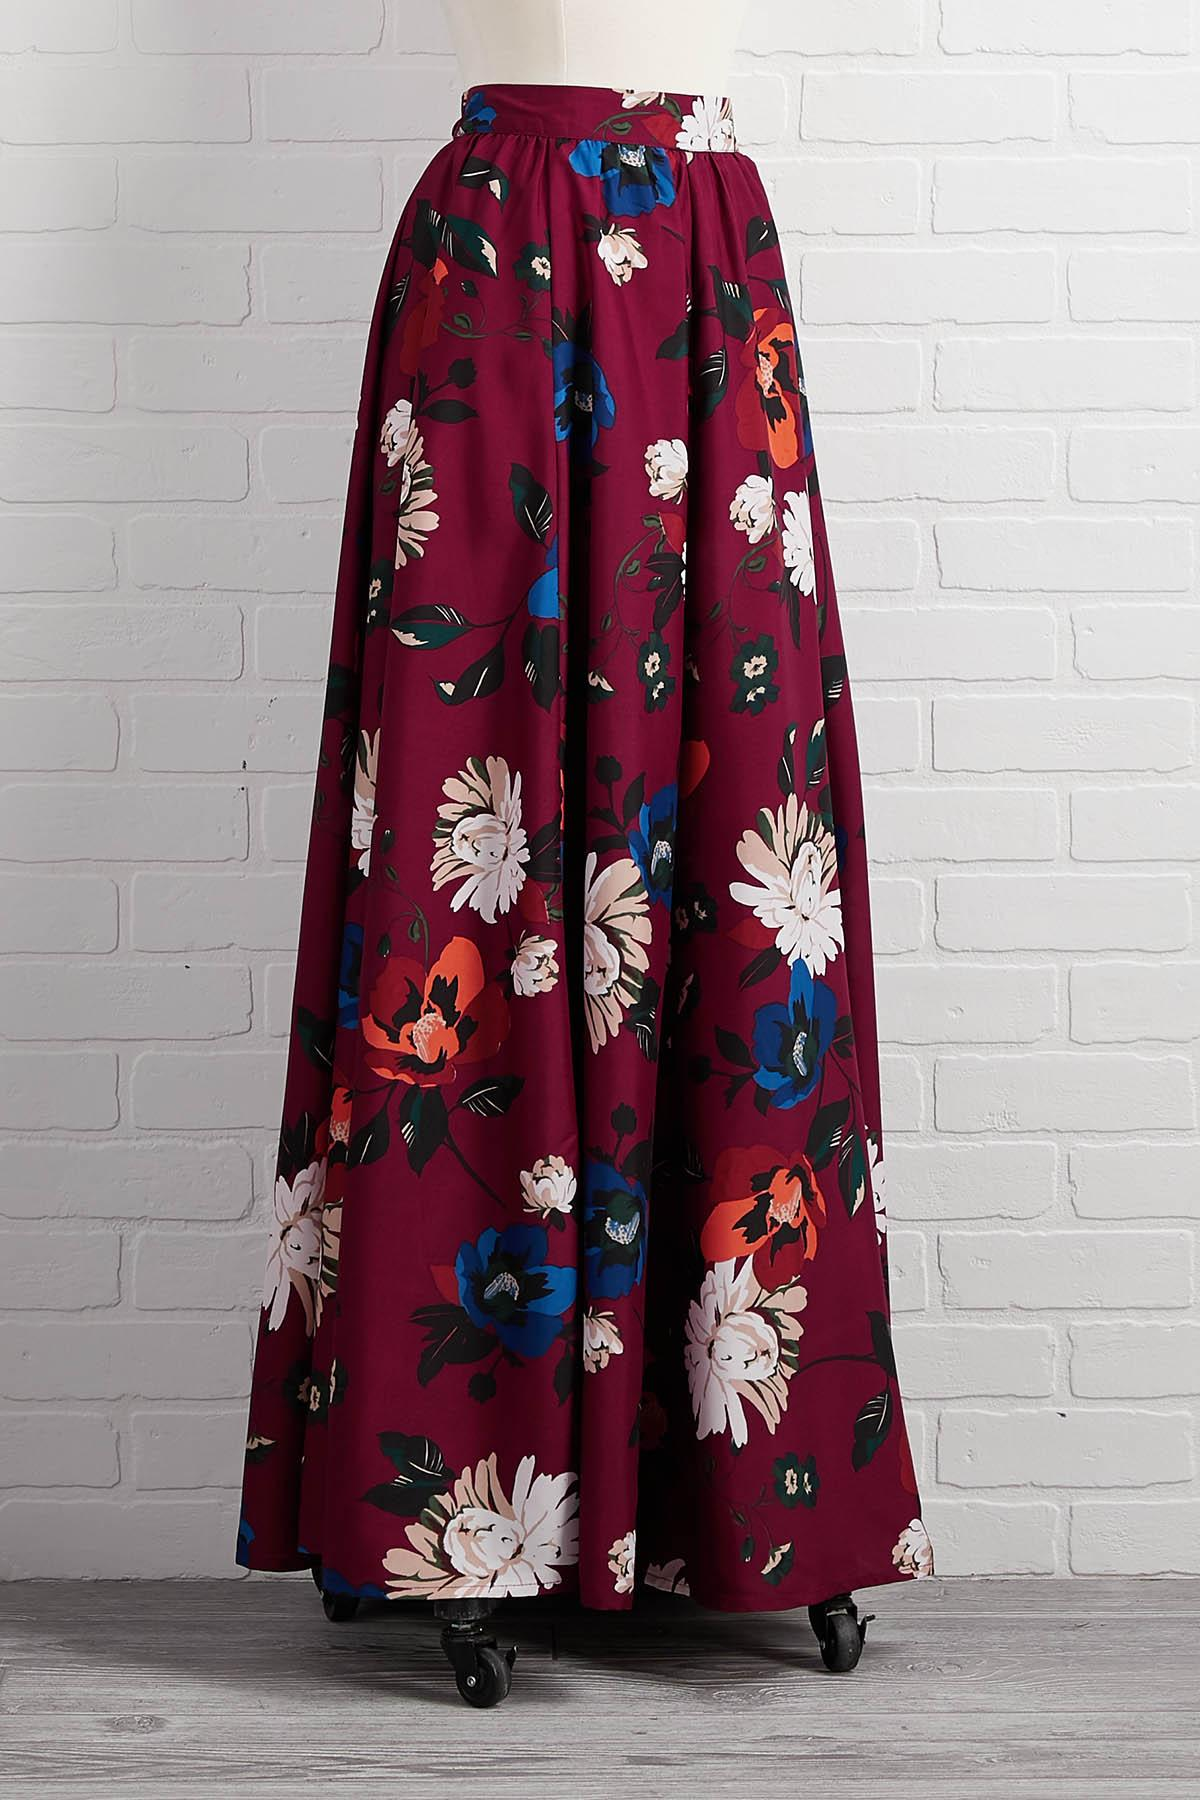 Easy Come Easy Floral Skirt